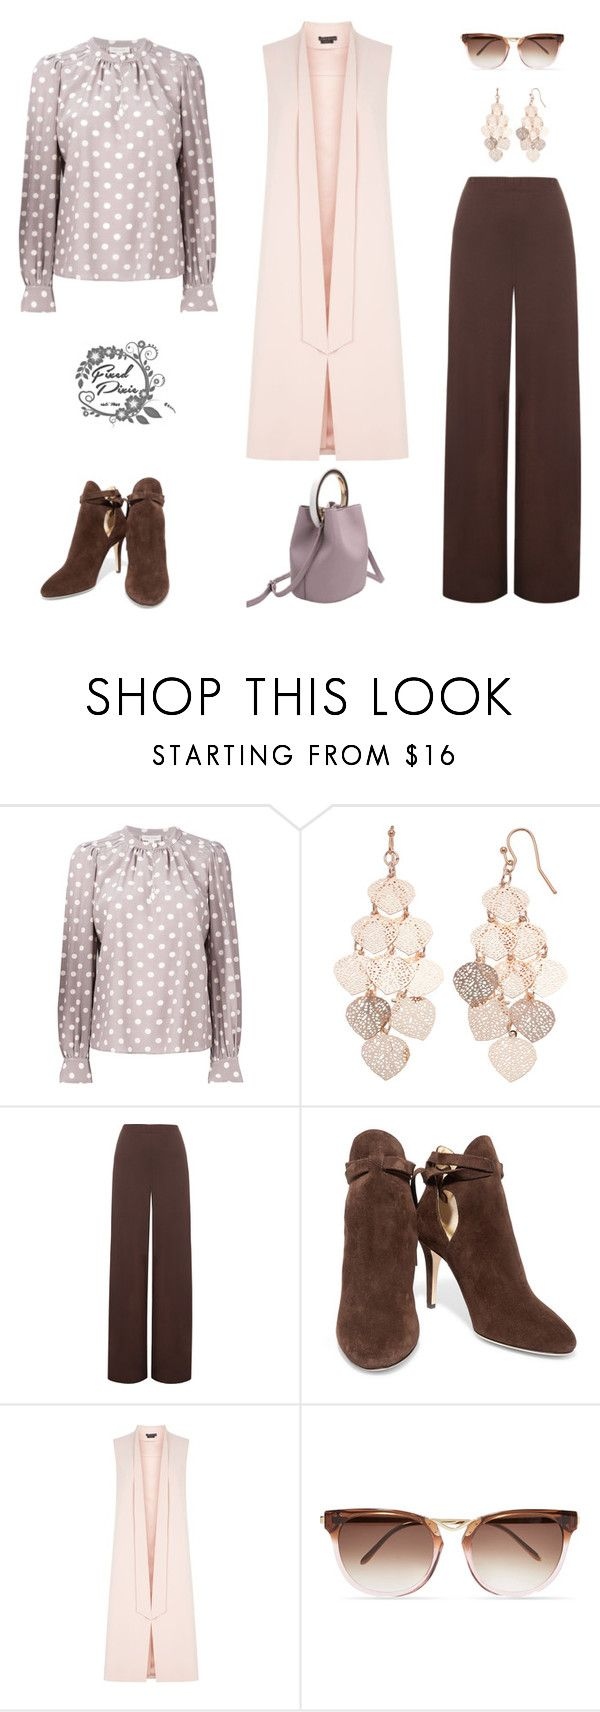 """Nice Combo"" by fixedpixie ❤ liked on Polyvore featuring Marc Jacobs, LC Lauren Conrad, WearAll, Jimmy Choo, Alice + Olivia, Thierry Lasry, Spring, PolkaDots, trends and 2018"